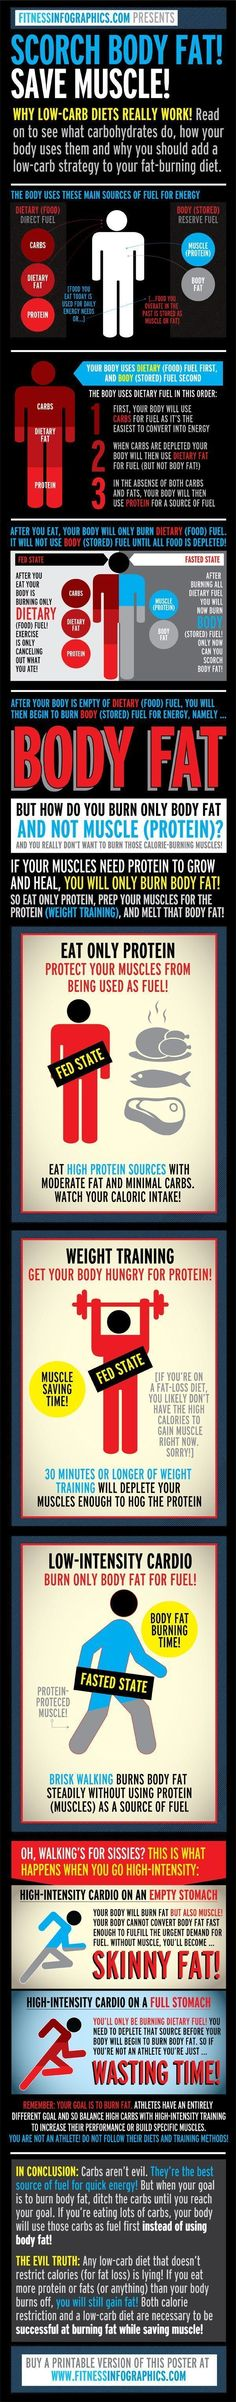 lose weight fast tips, diet plans for weight loss, lose belly fat in 1 week - See more here ► https://www.youtube.com/watch?v=__Gi8cvdquw Tags: quick weight loss home remedies, quick weight loss center supplements, juice diets for quick weight loss - How